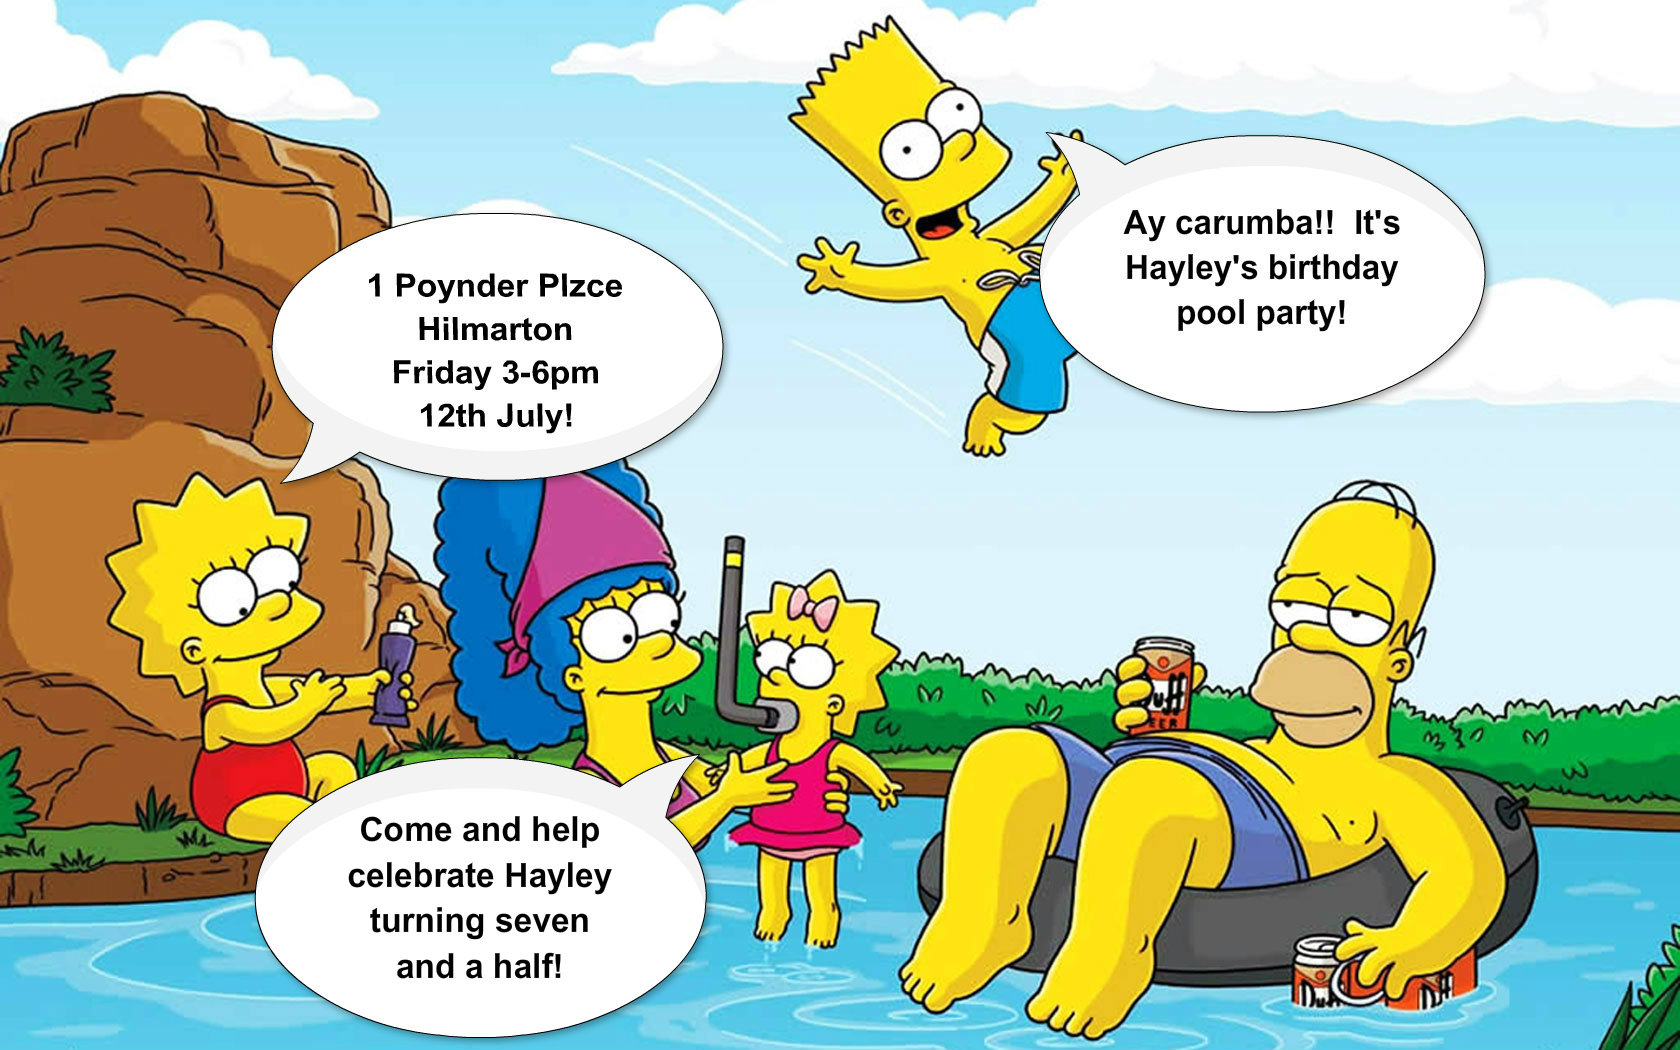 Simpsons Characters Images Pool Party Invite Hd Wallpaper And Background  Photos